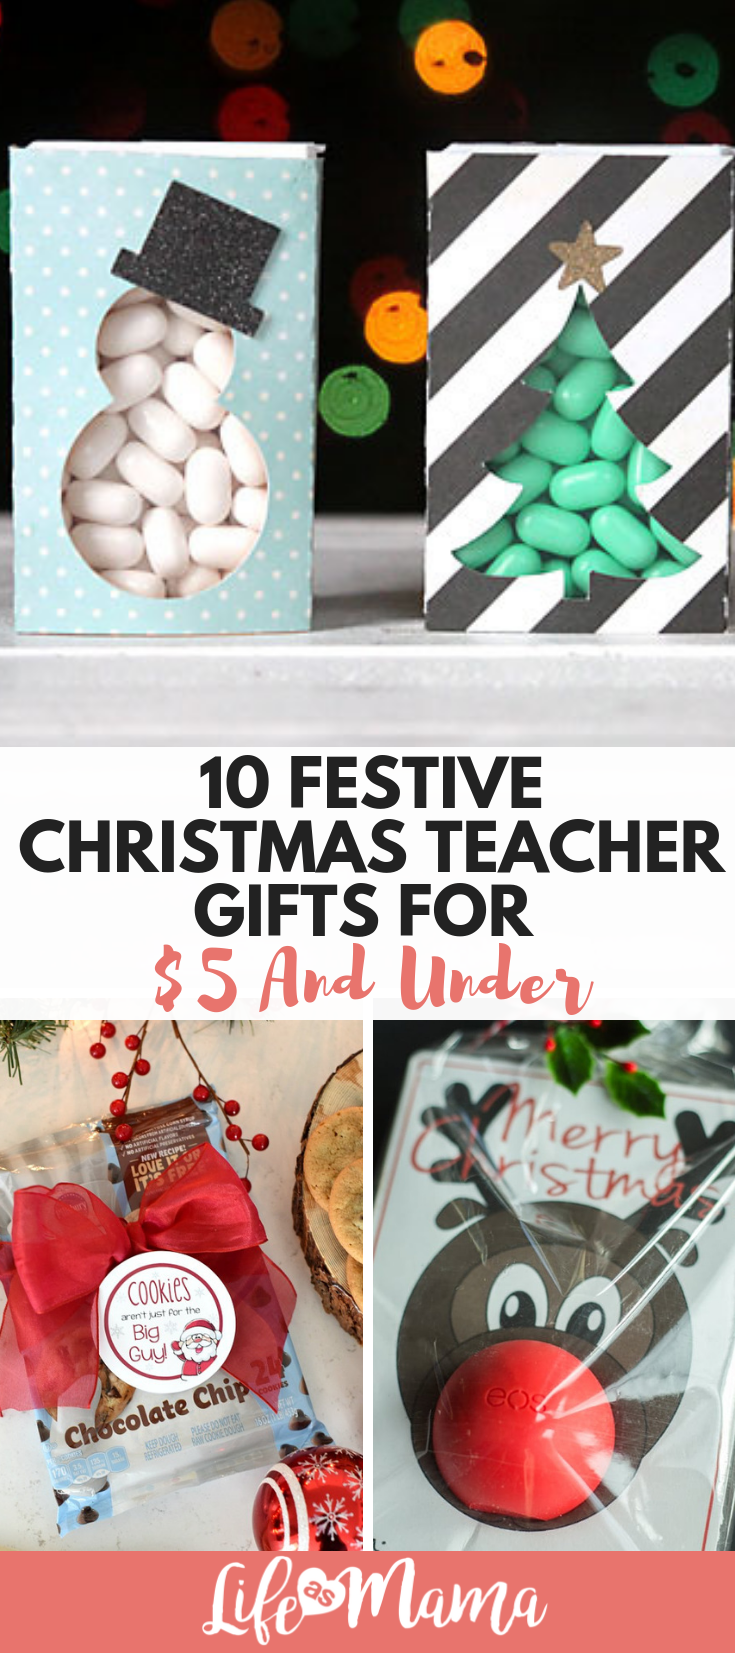 10 Festive Christmas Teacher Gifts For $5 And Under | All About ...